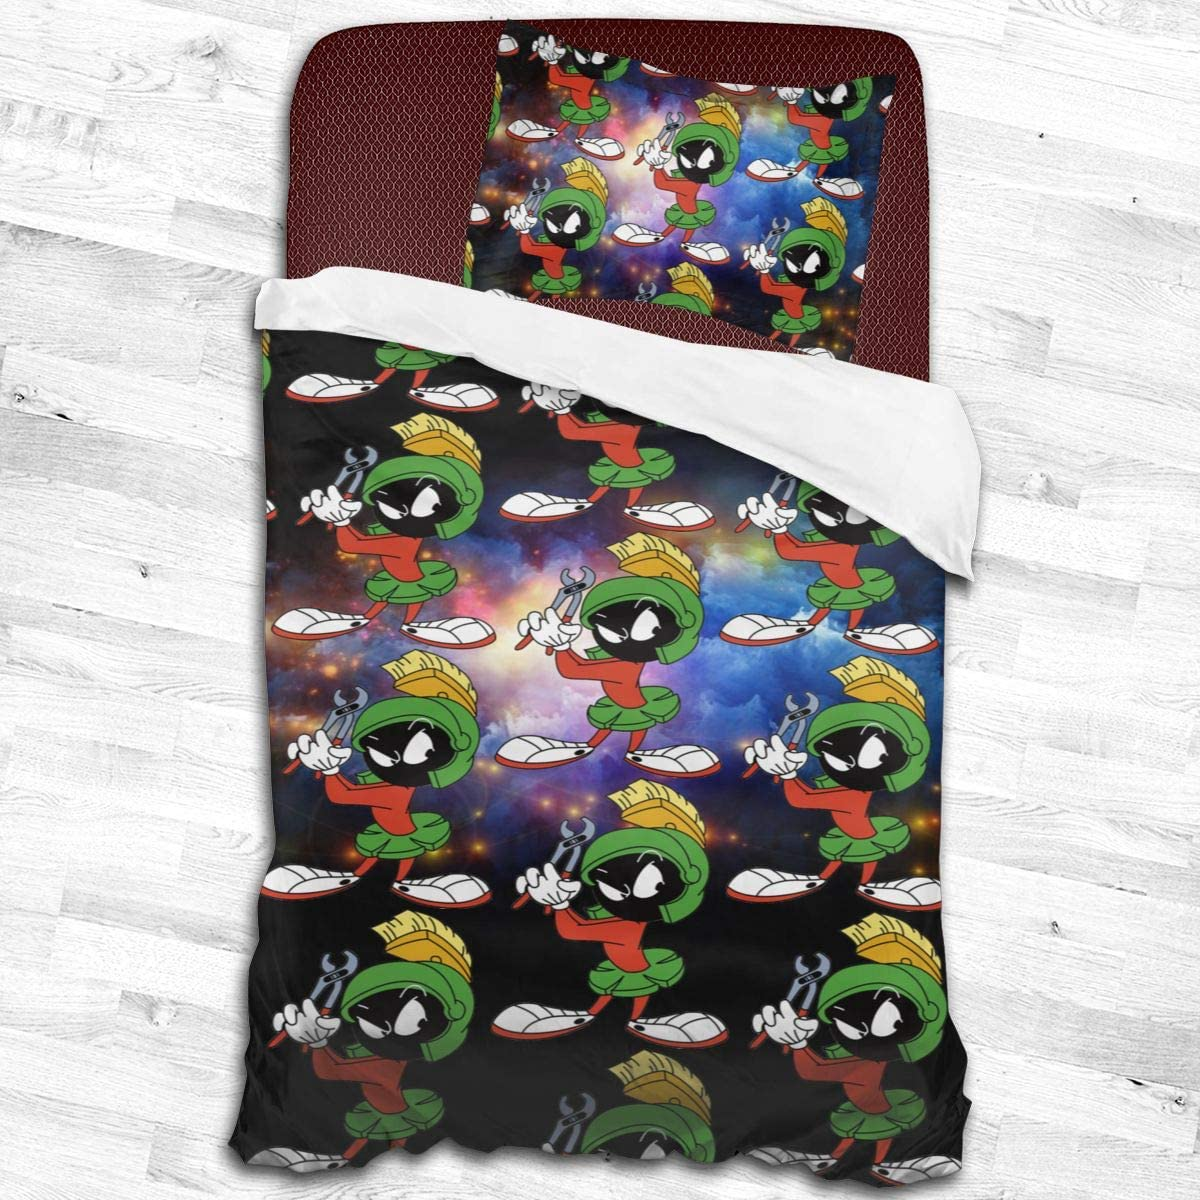 Ongjiadx Marvin The Martian 2 Piece Kids Bedding Set Toddler Bed Sheet 1 Duvet Cover Set with 1 Pillowcase for Teens and Children